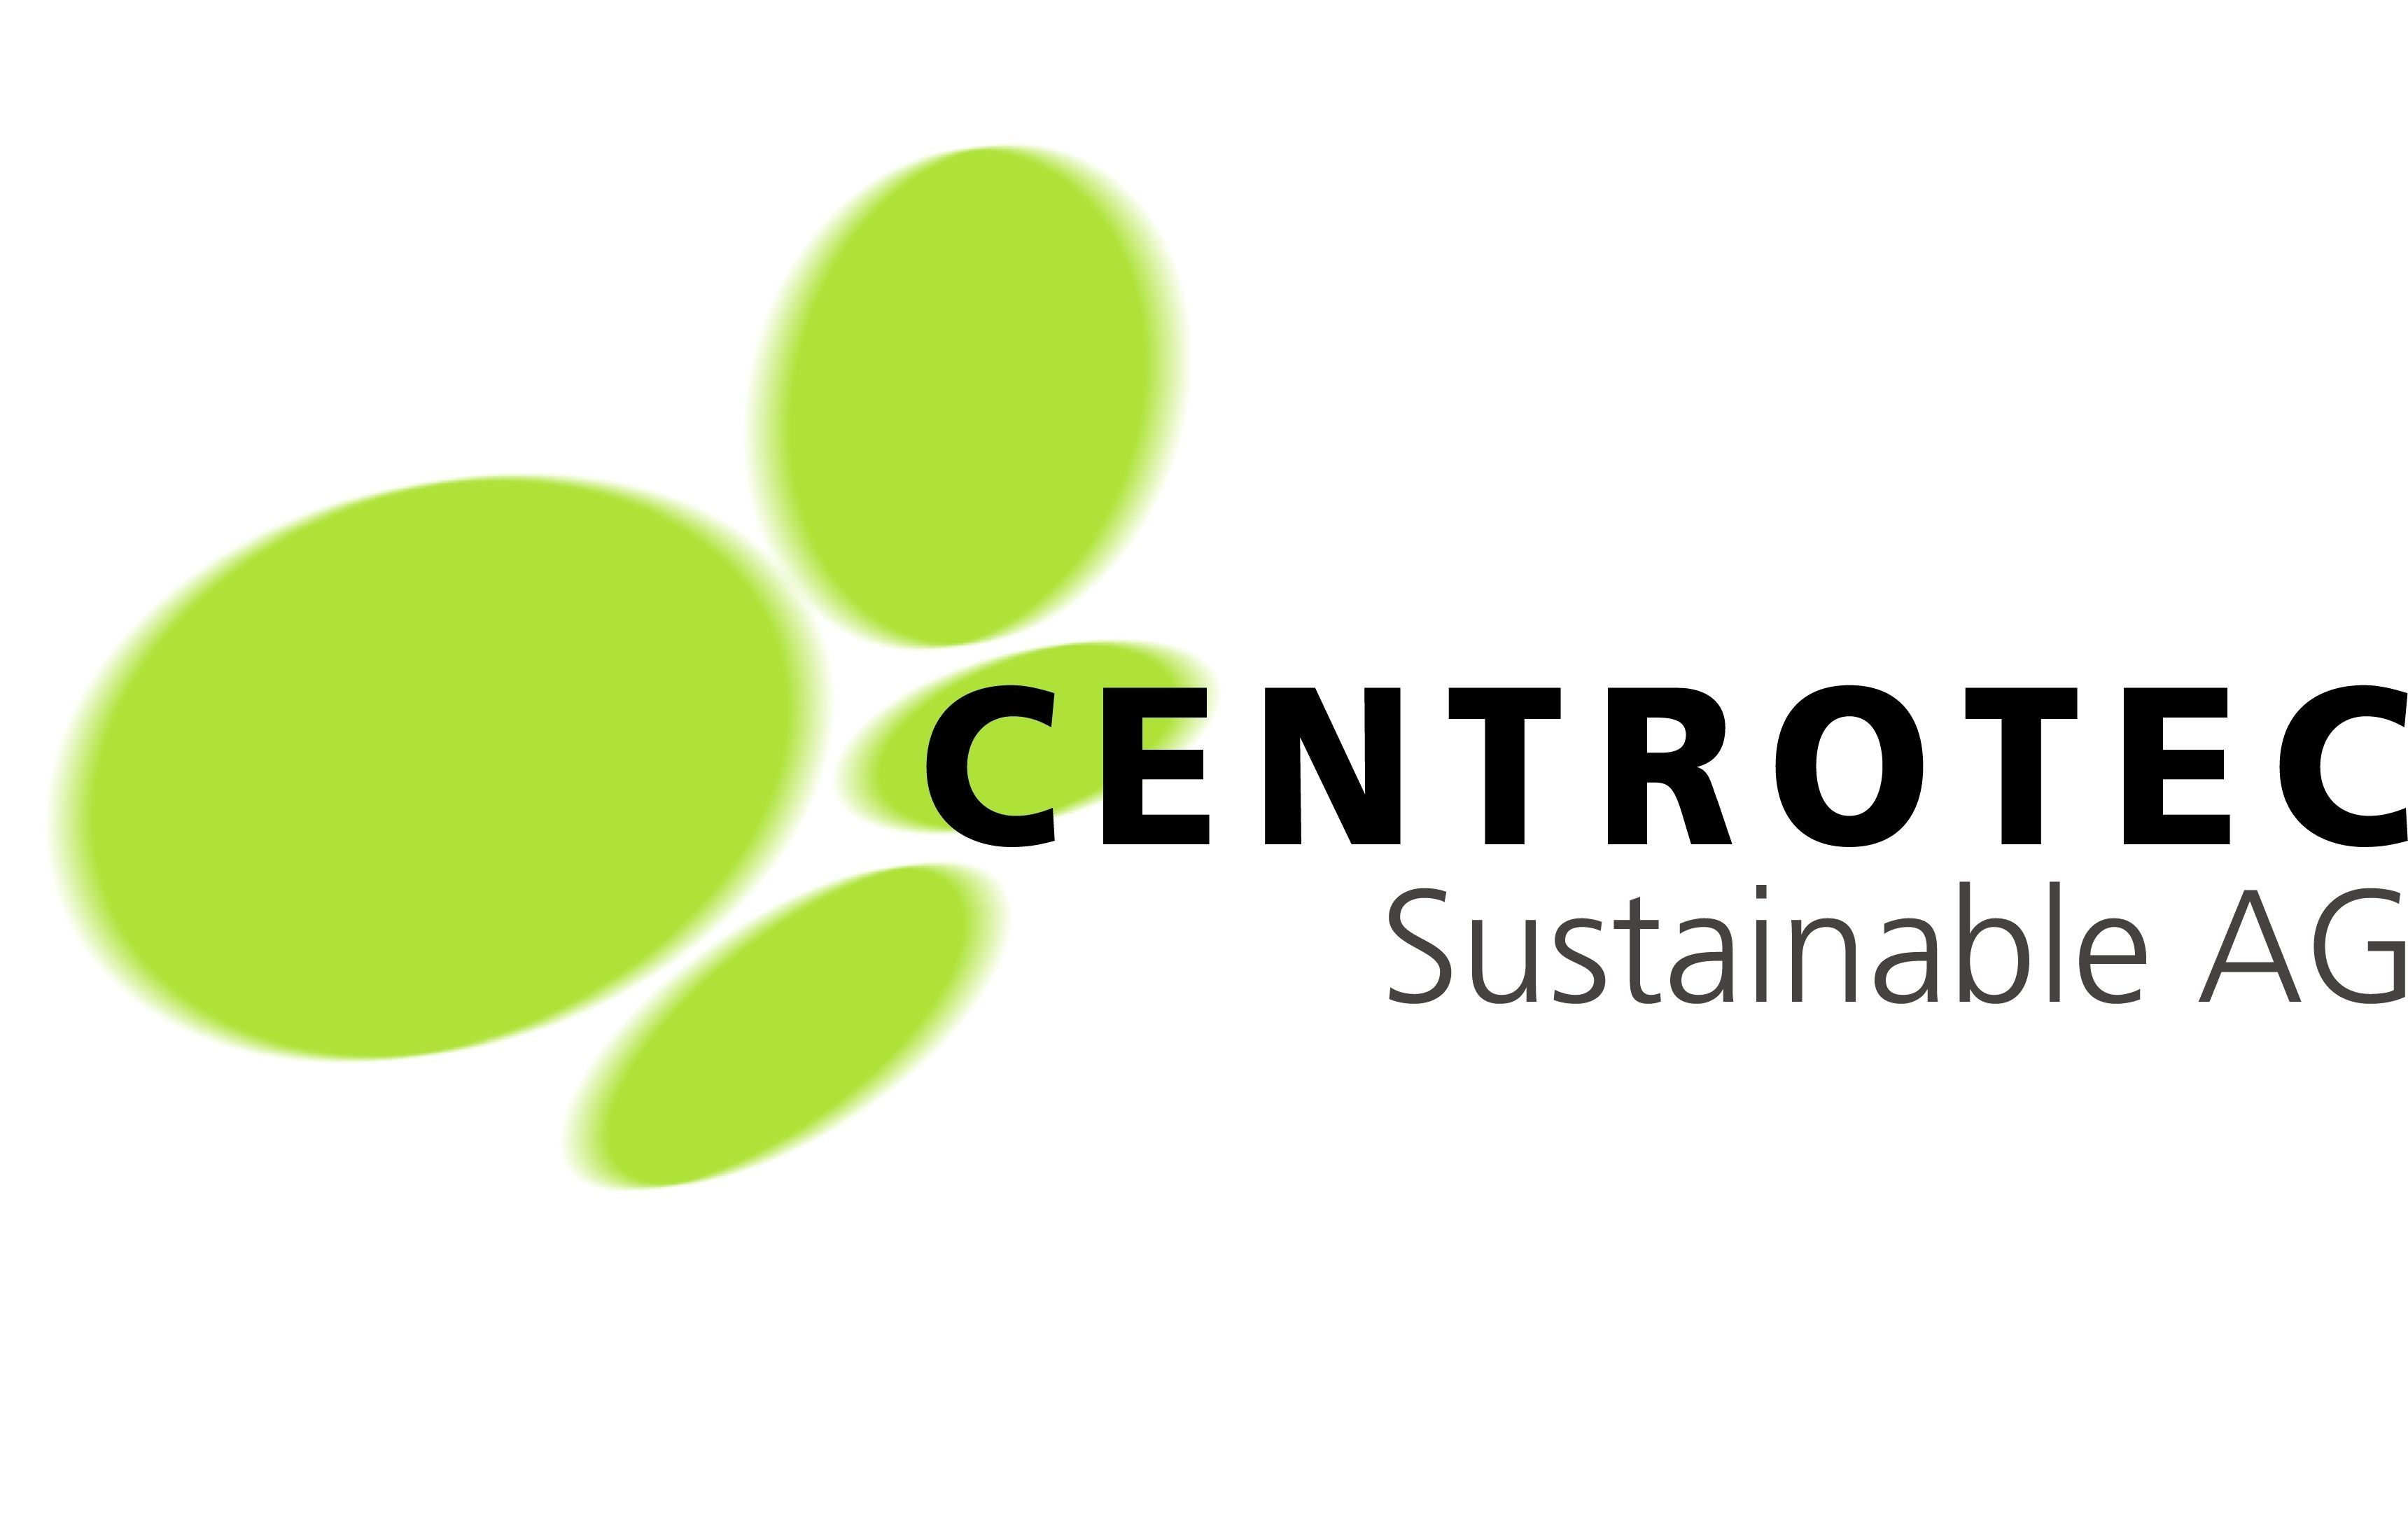 CENTROTEC Sustainable AG